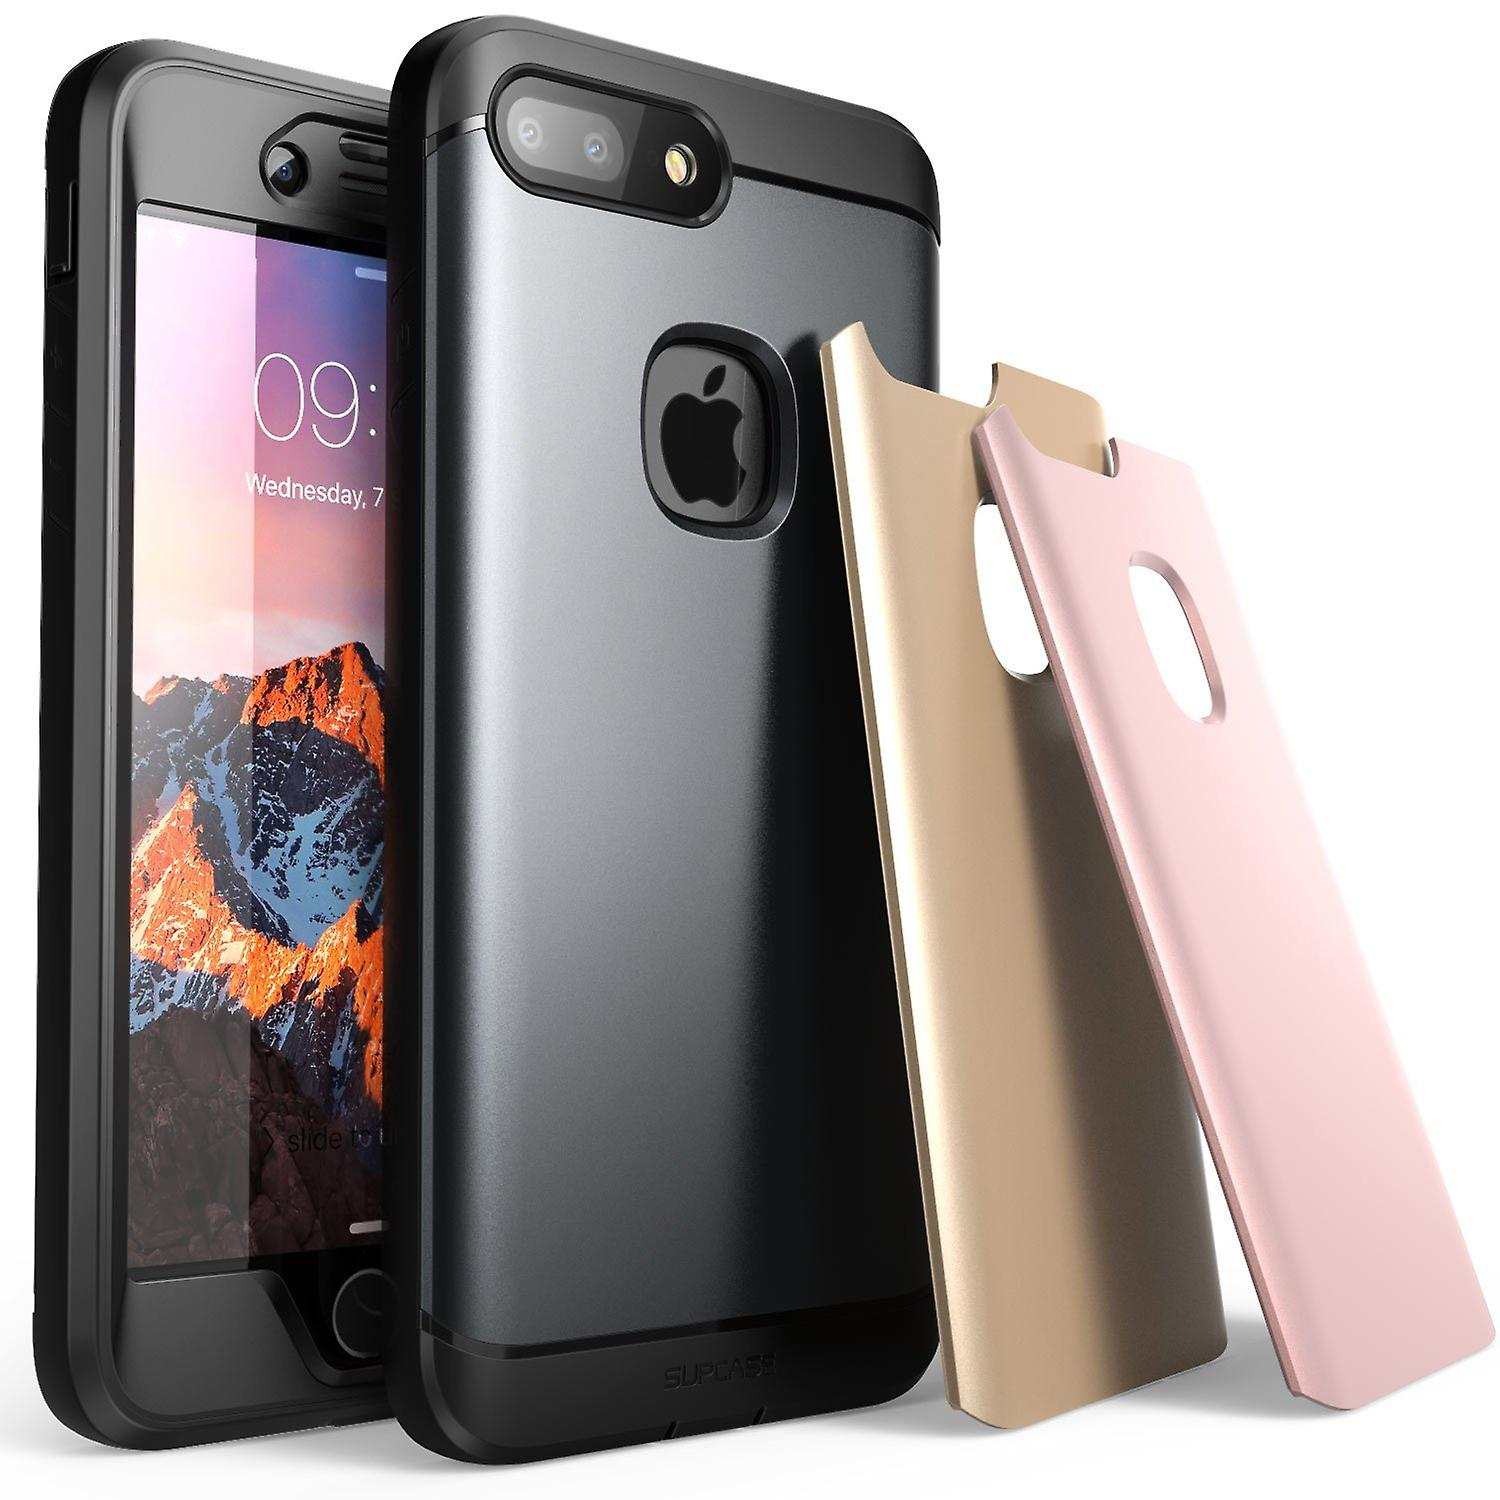 iPhone 7 Plus Case, SUPCASE Water Resistant Full-body Rugged Case with Built-in Screen Protector